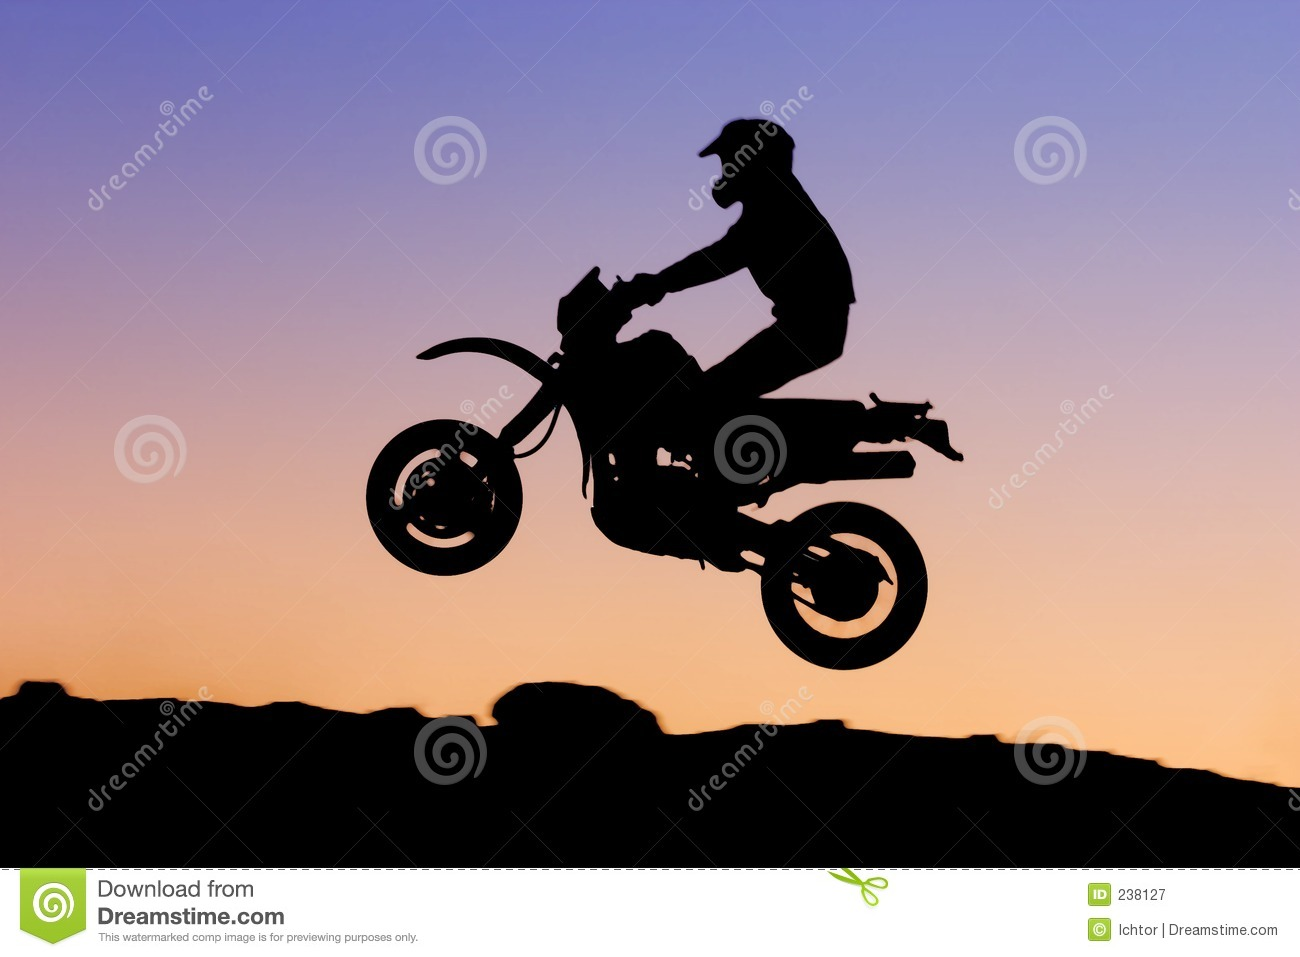 Motorbike Silhouette Royalty Free Stock Photography - Image: 238127